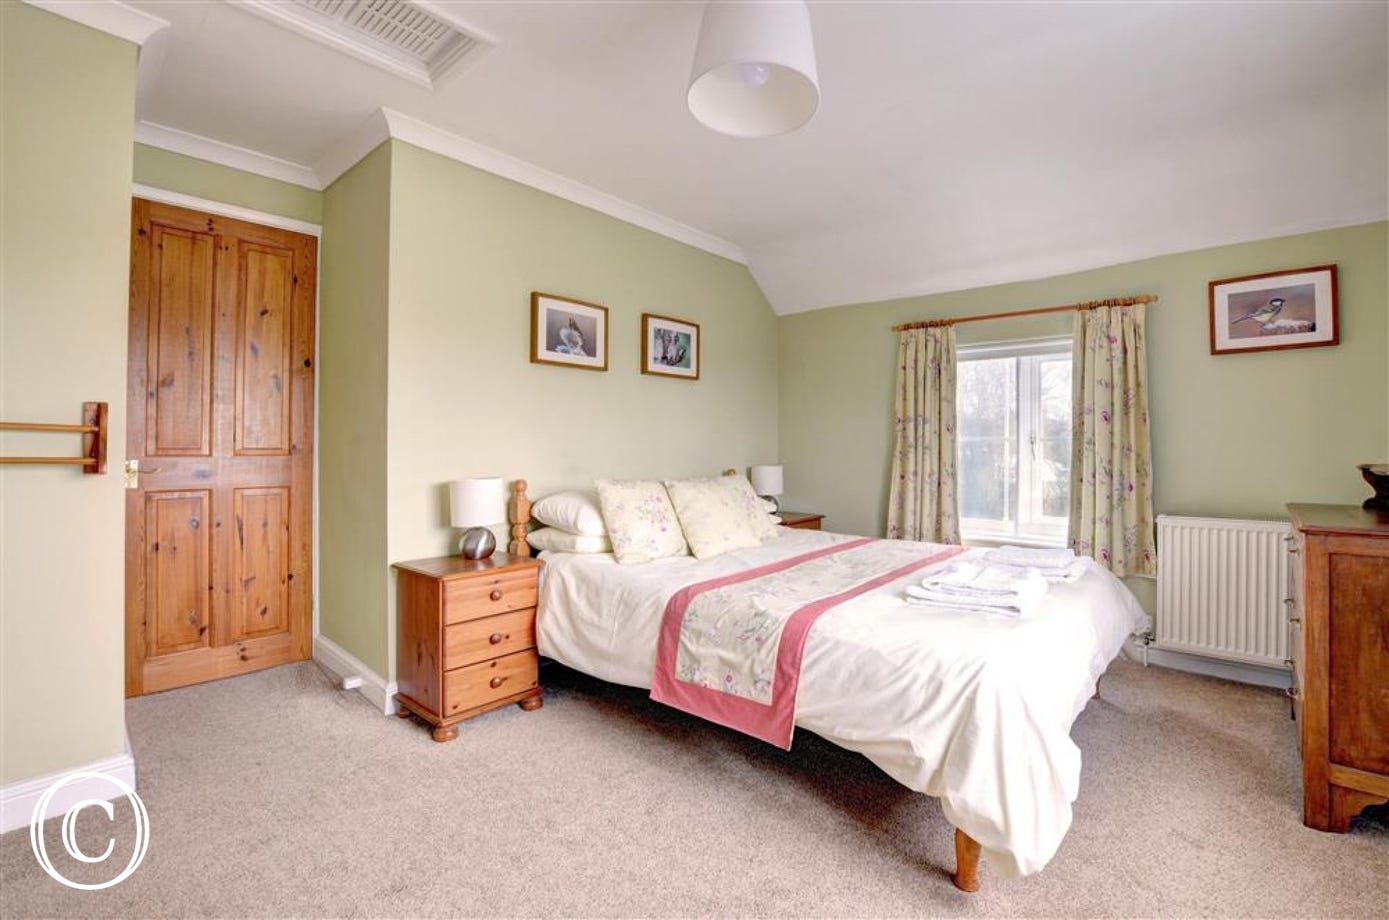 Double bedroom, with bedside table and chest drawers in pine.